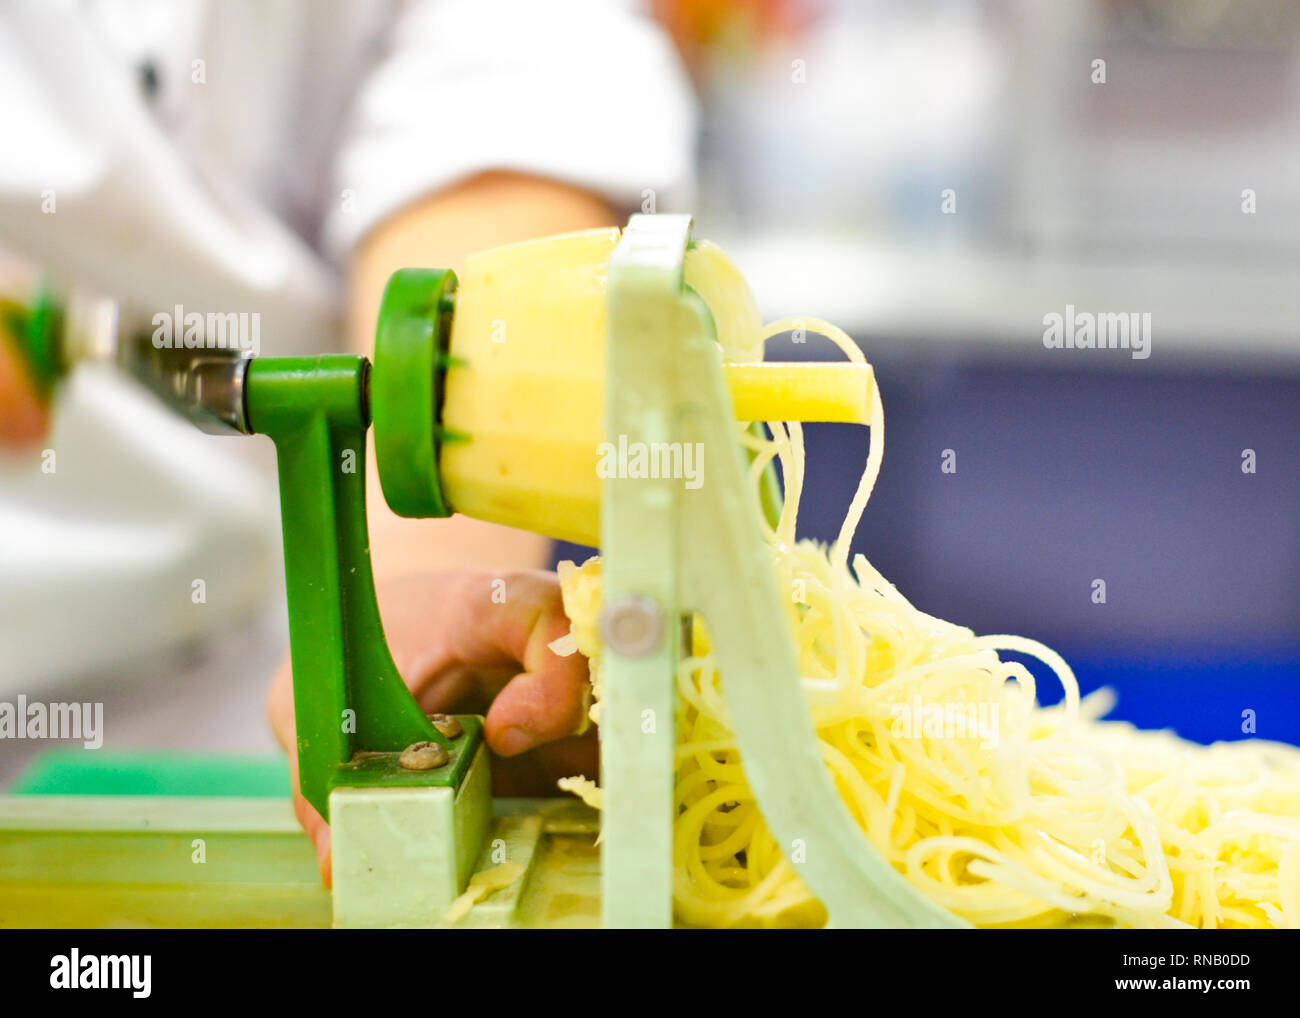 Vegetable Blade Spiralizer, Spiral vegetable slicer with potato spaghetti on table Stock Photo